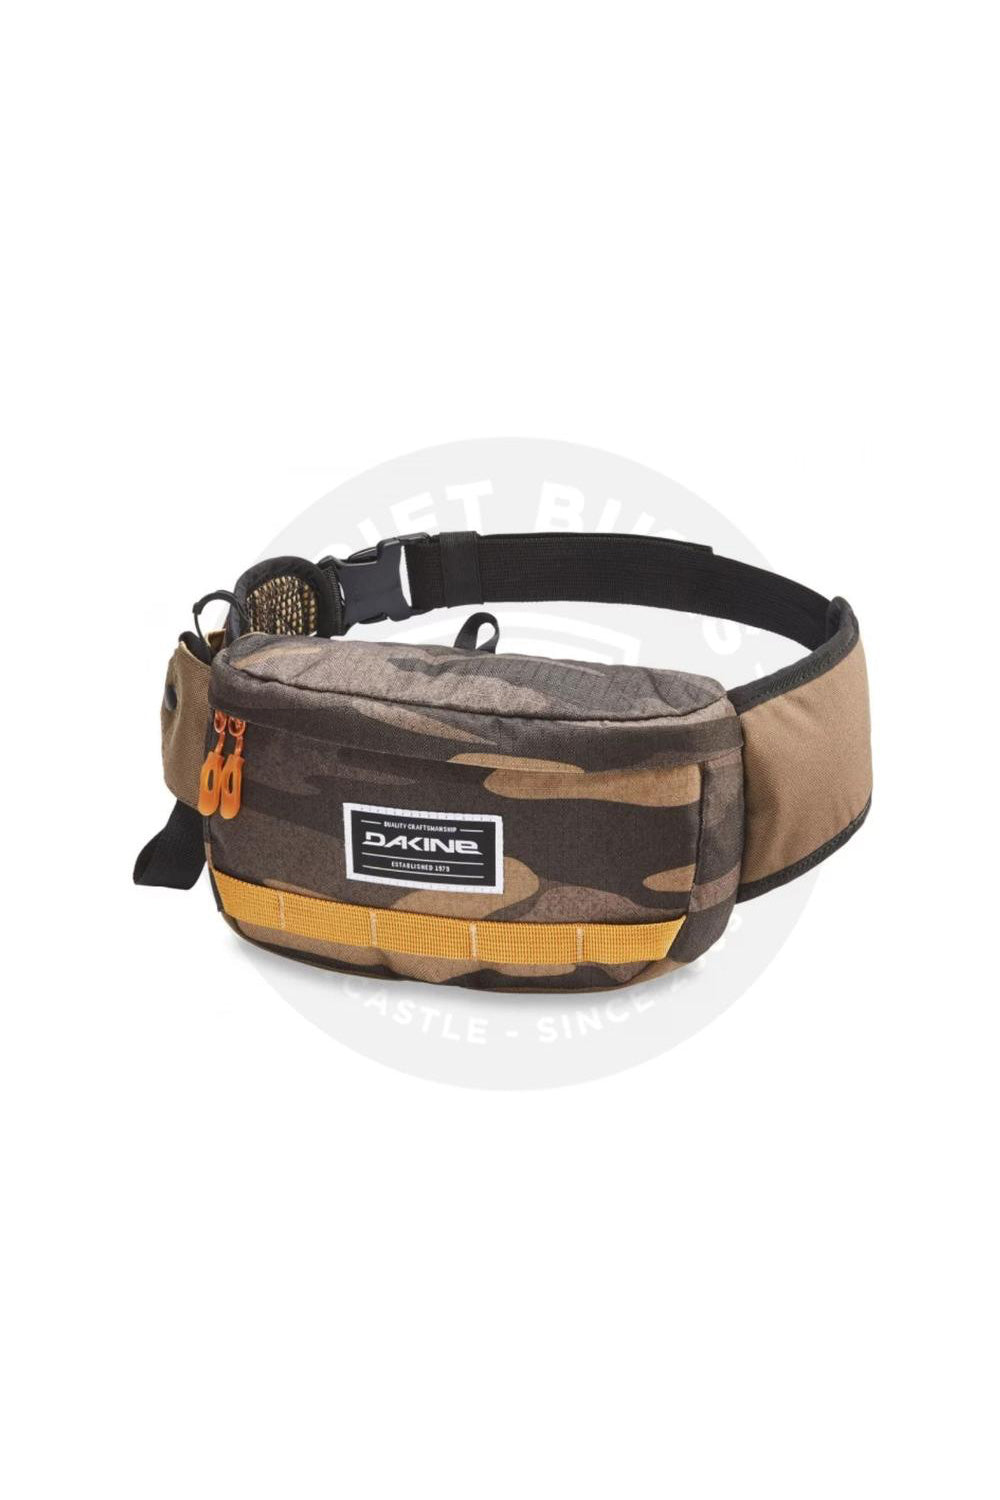 Dakine Hot Laps Waist Bag 2L